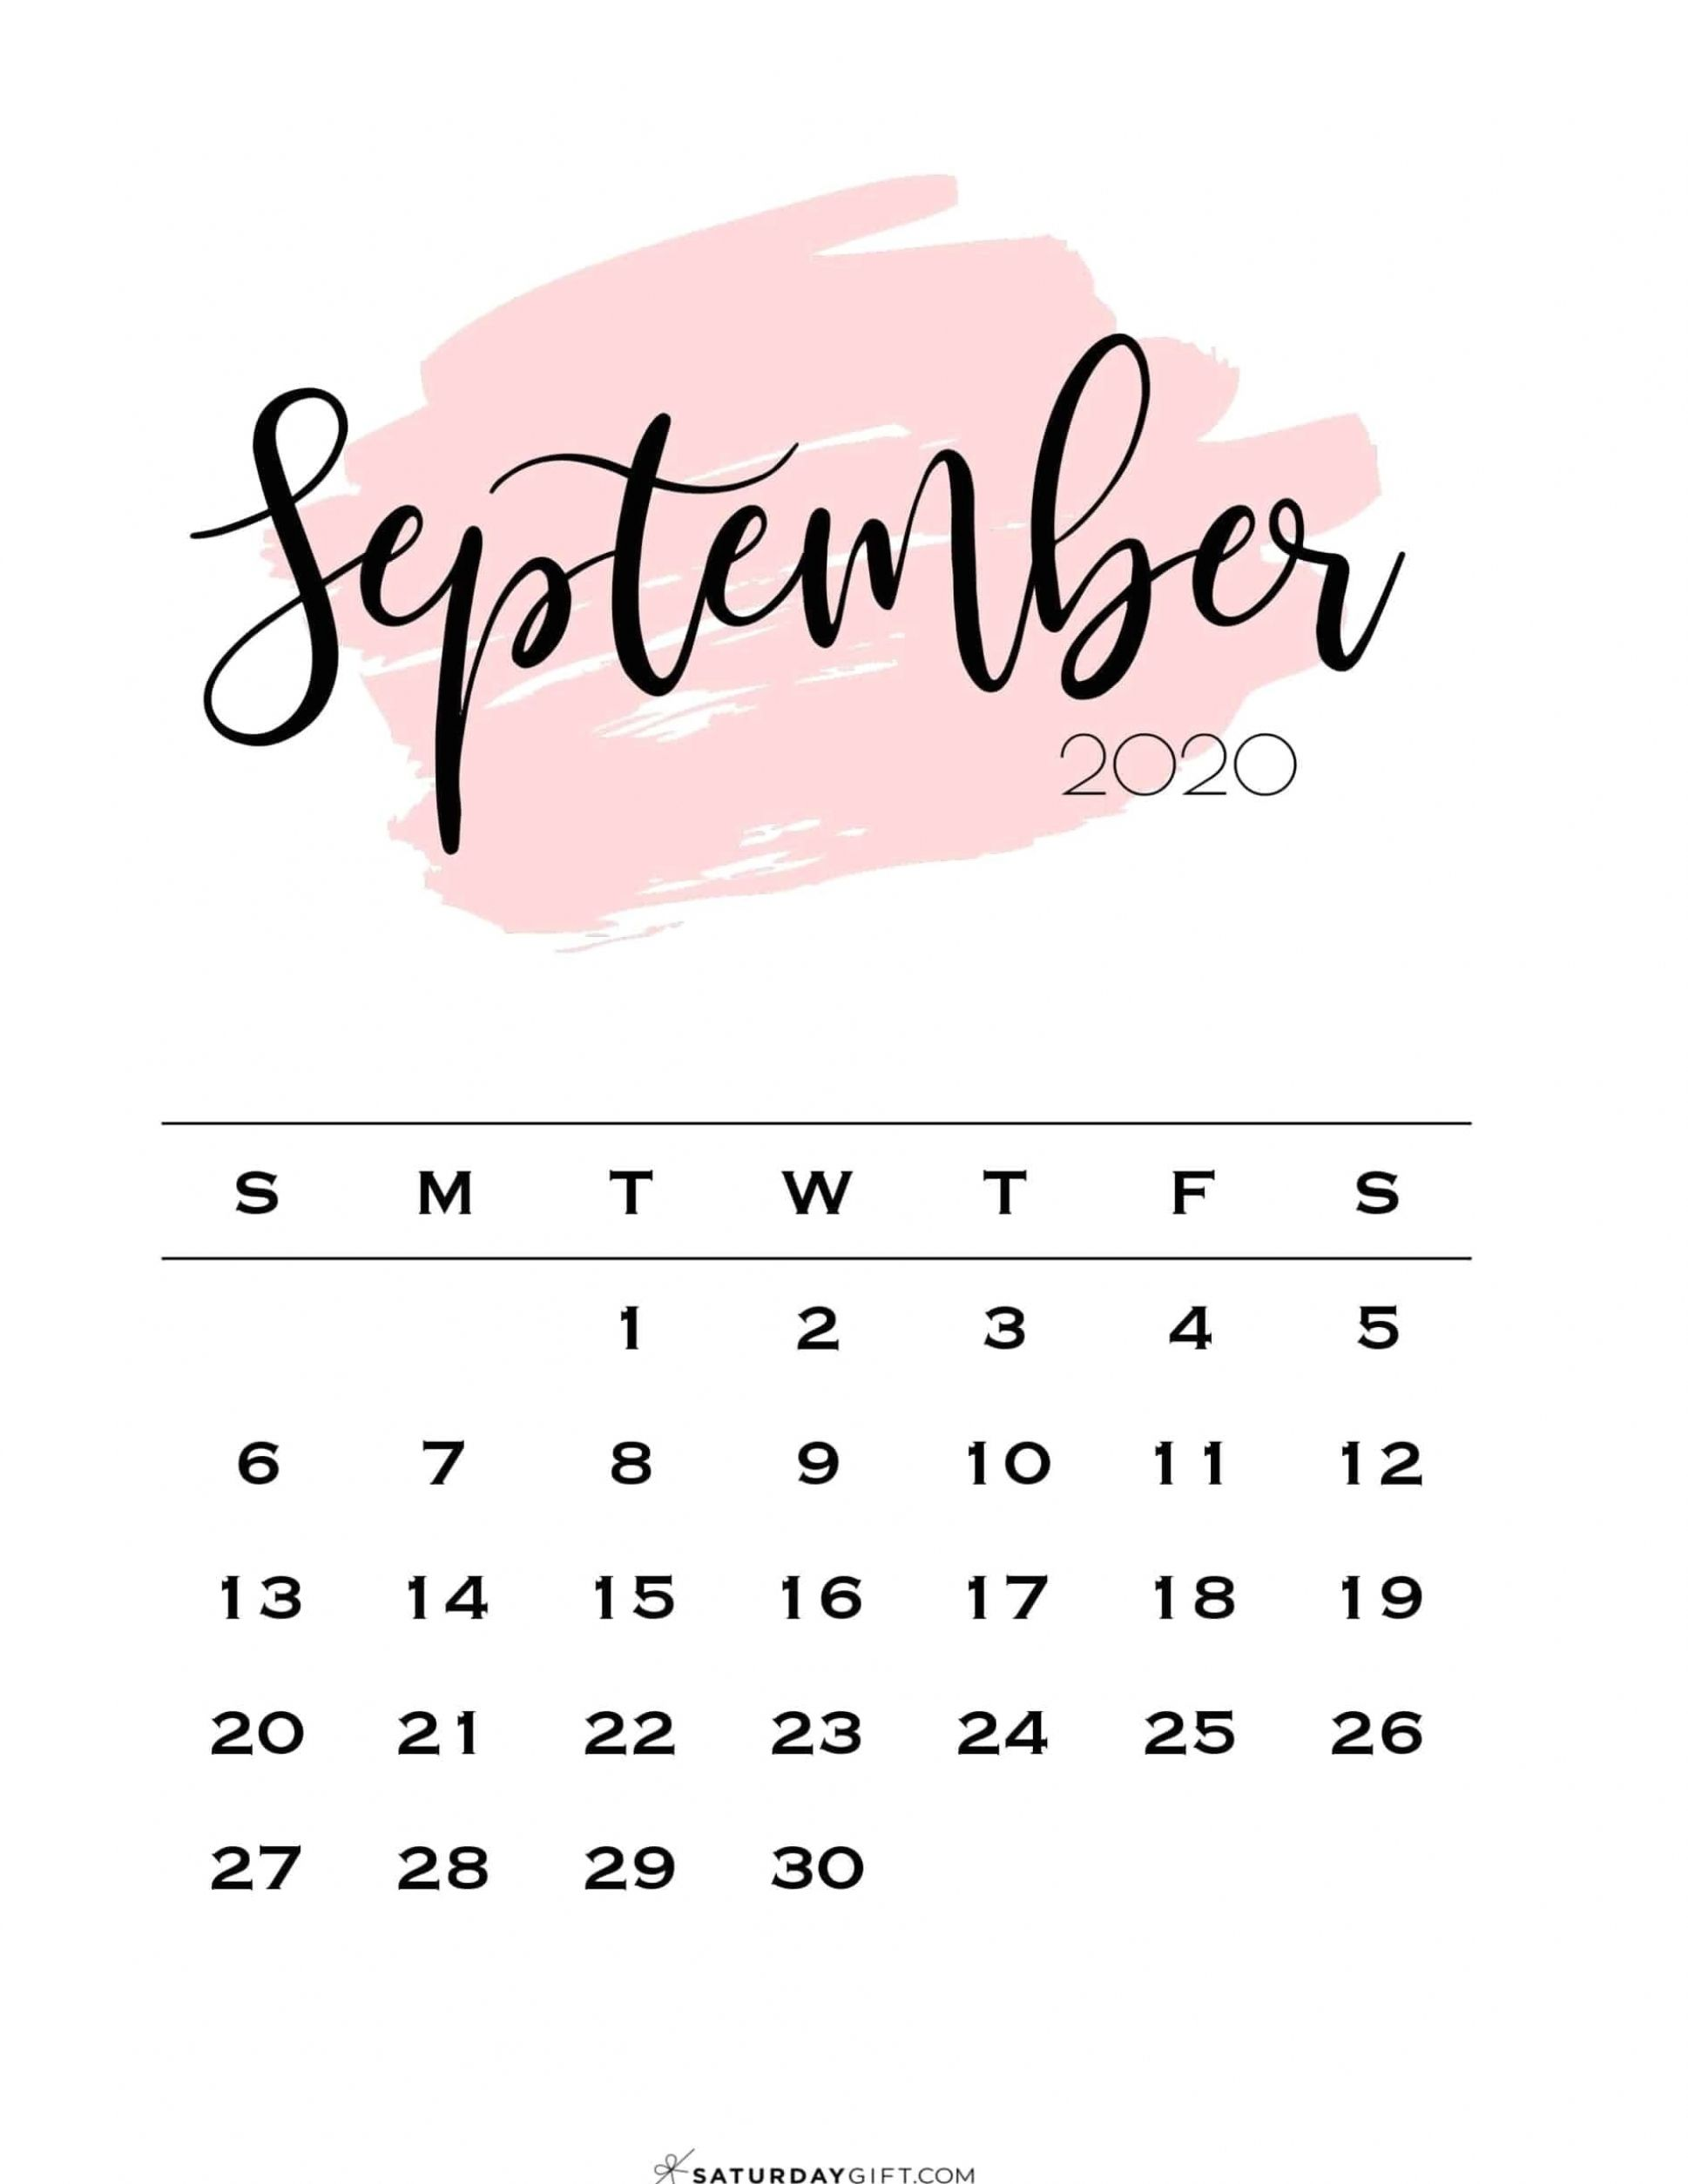 Looking for a cute, free printable September 2020 calendar? Here are some you might like! Choose your favorite from the pretty calendar designs! Computer schedules give people that have an opportune solution to record the days as well as appointments. These items arrive in a variety of models, colours and also configurations. If you may well ask yourself the key reason why these people should choose this type of diary previously mentioned the rest, there are a few often-cited good reasons to he